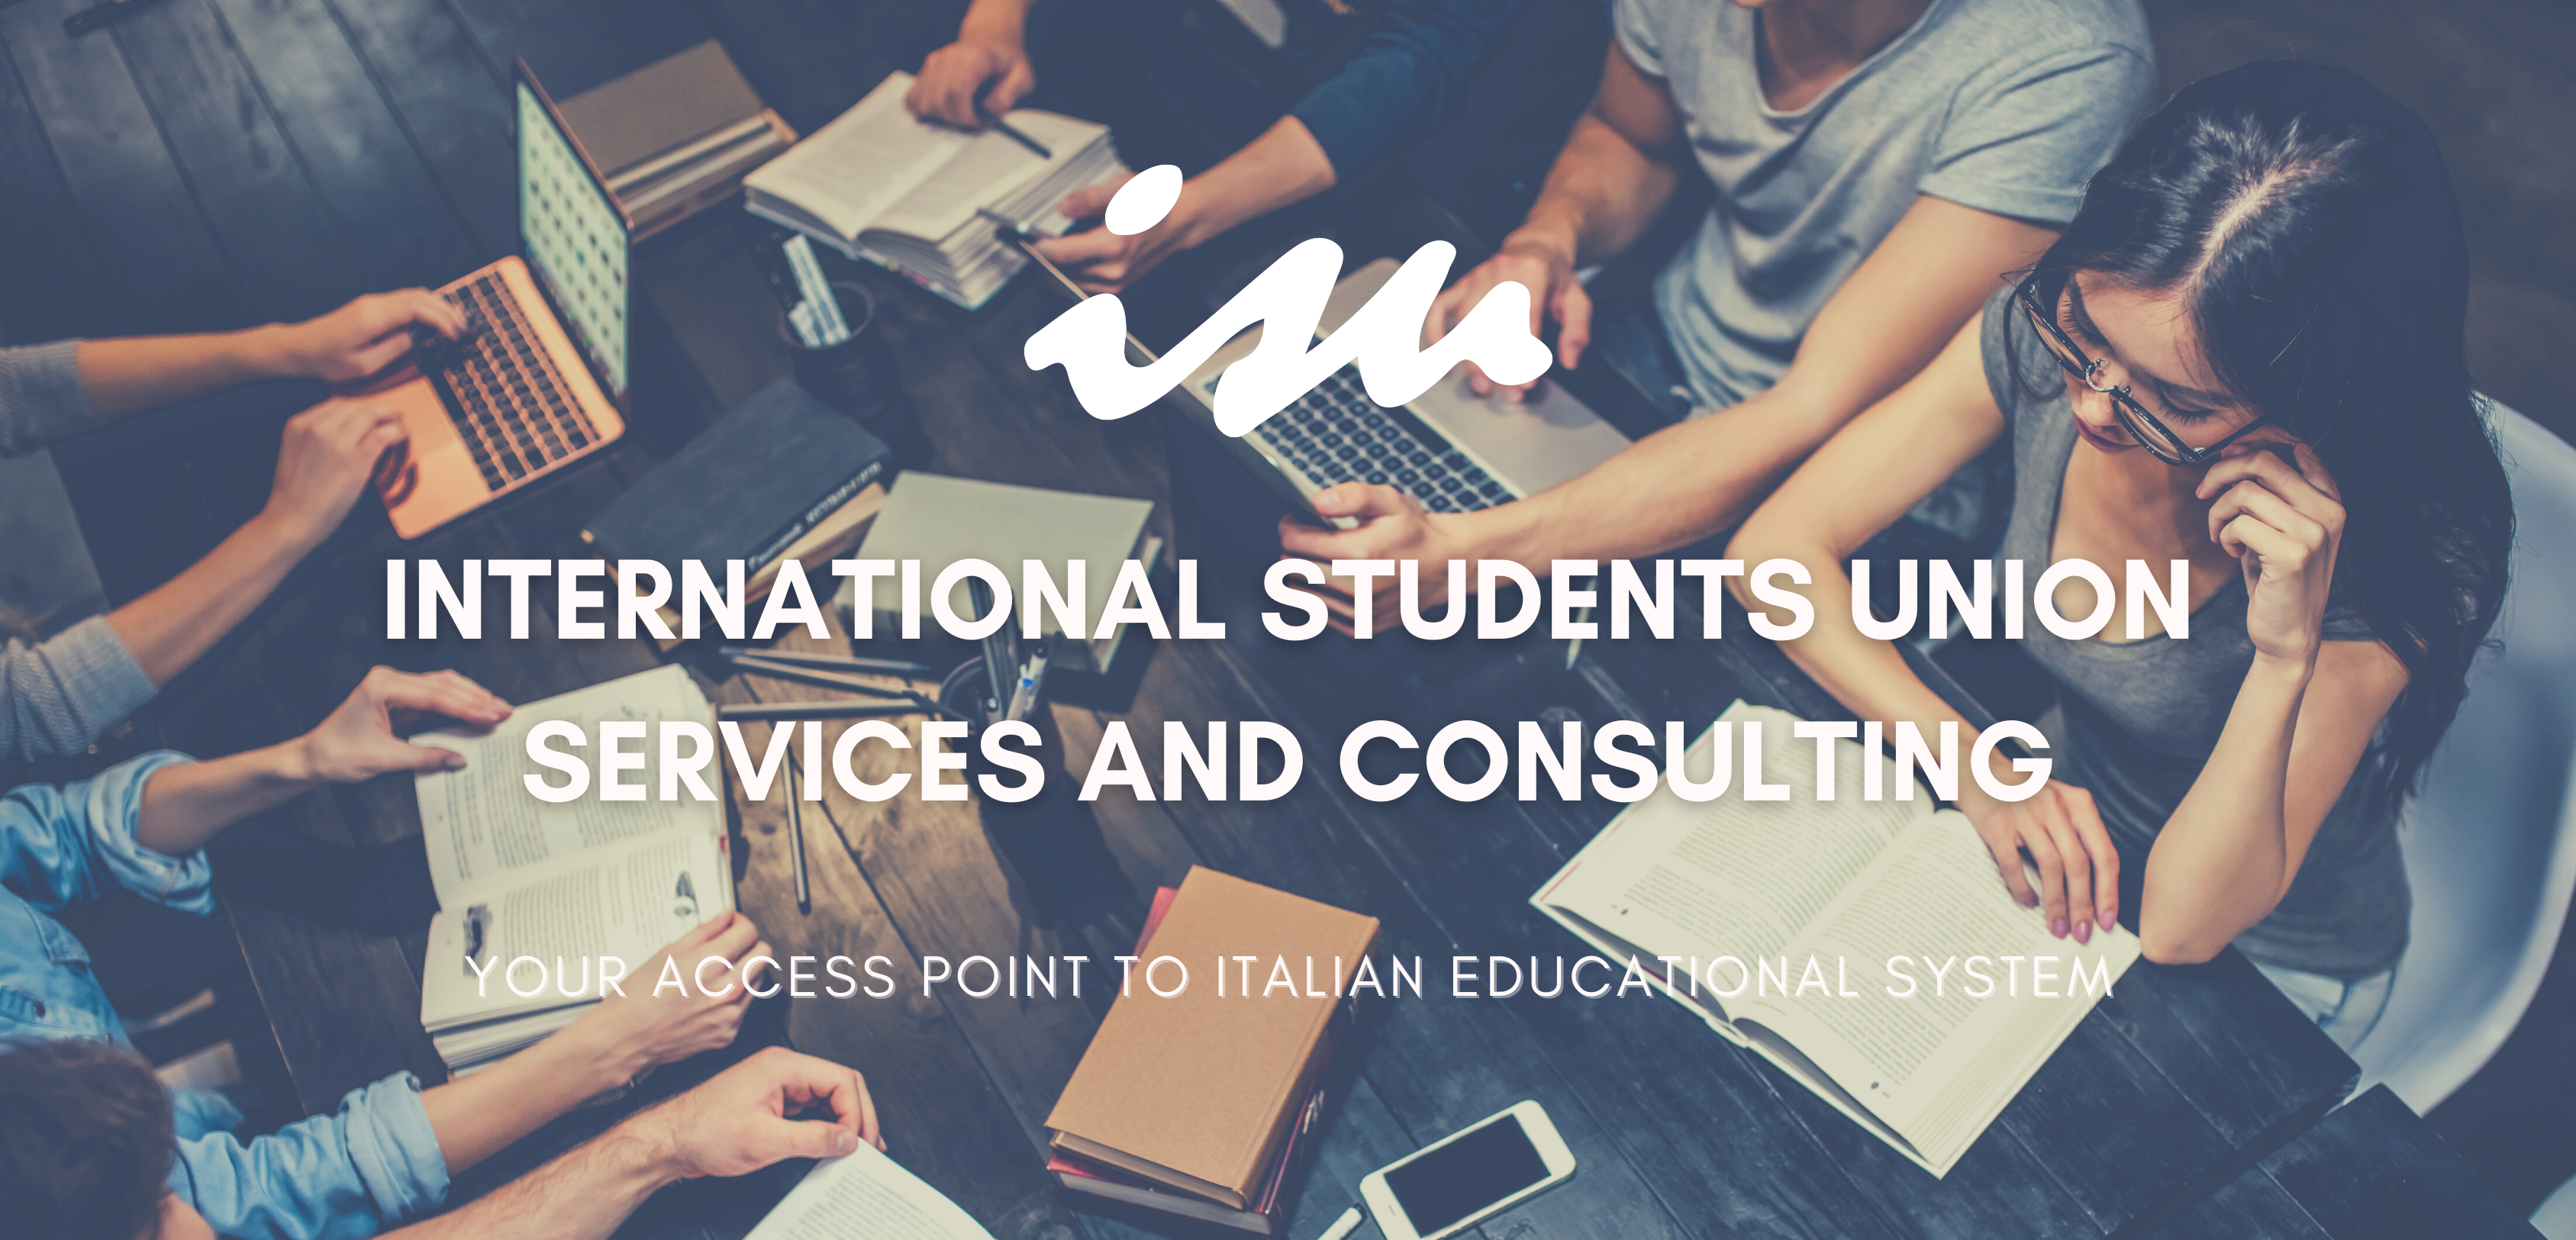 International students union services and consulting